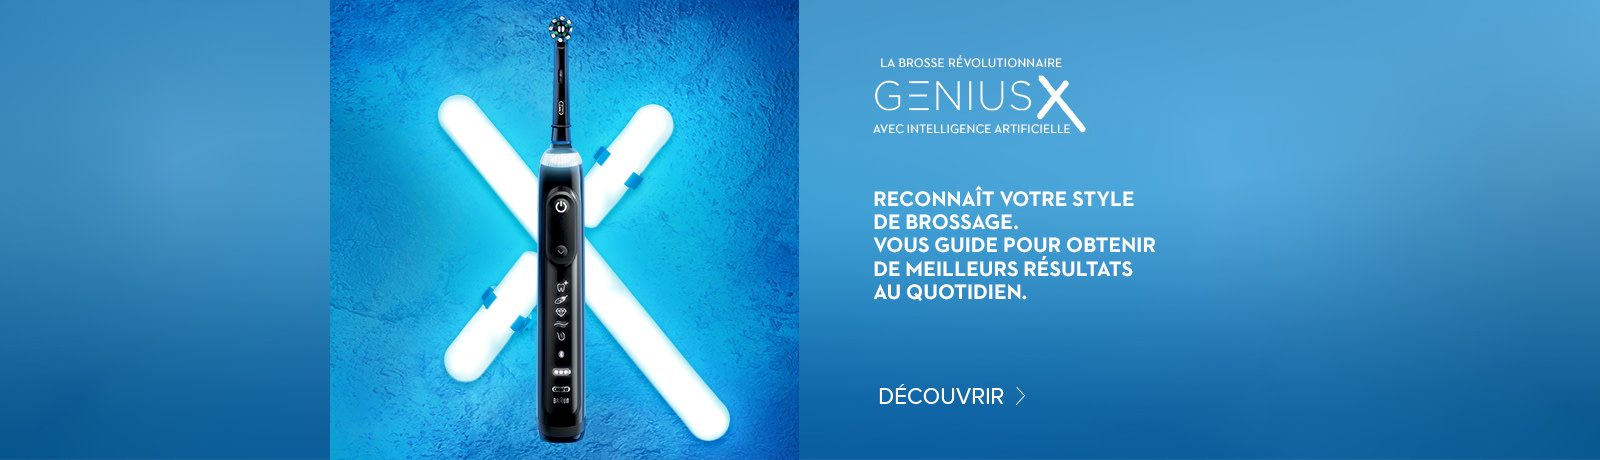 NOUVELLE Genius X INTELLIGENCE ARTIFICIELLE